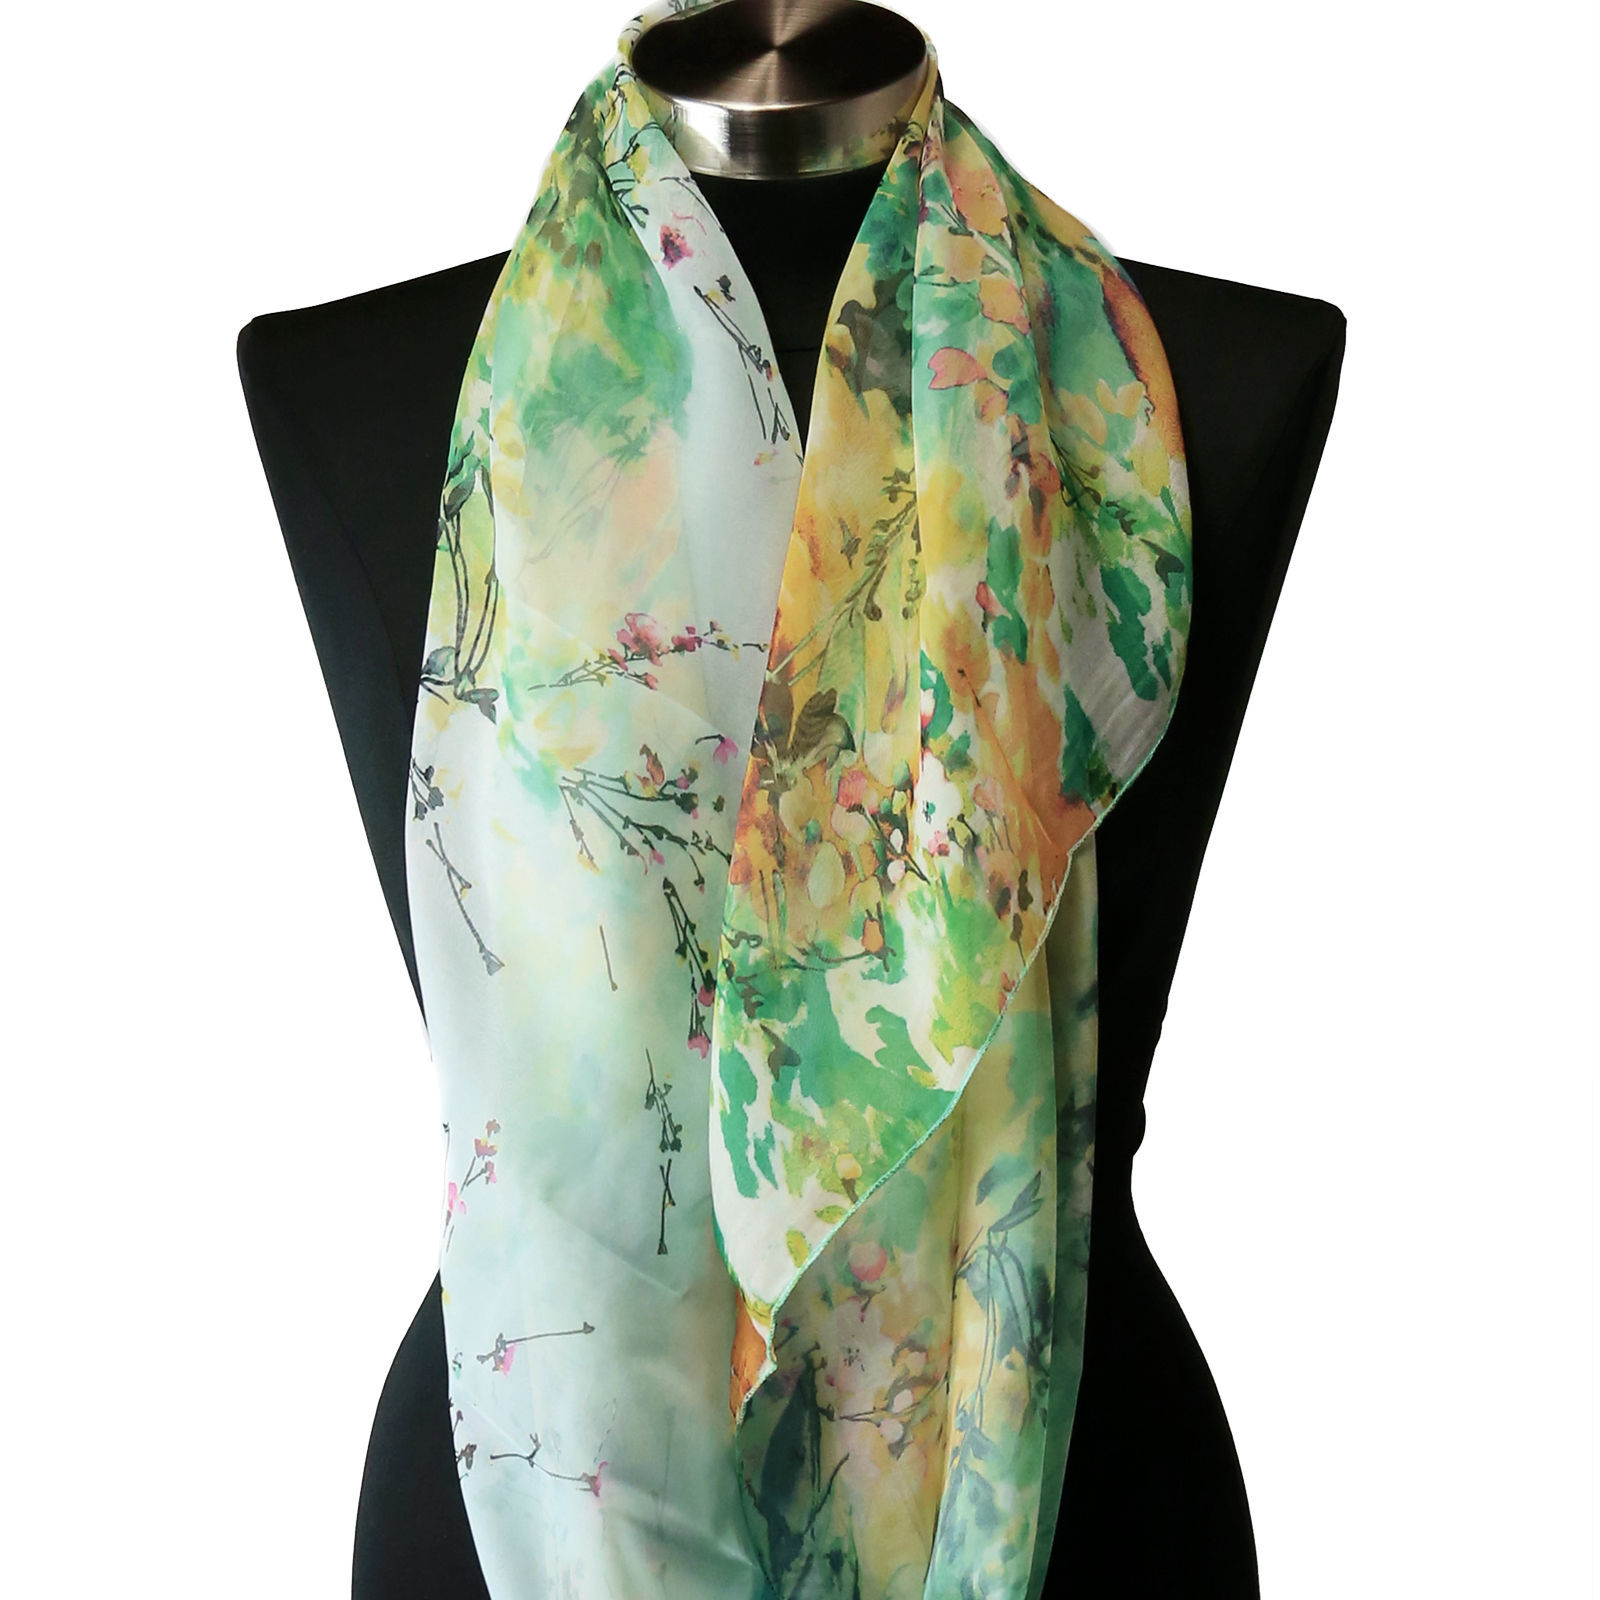 Primary image for Sheer Spring Watercolor Blue Green Yellow Floral Viscose Infinity Scarf Chiffon